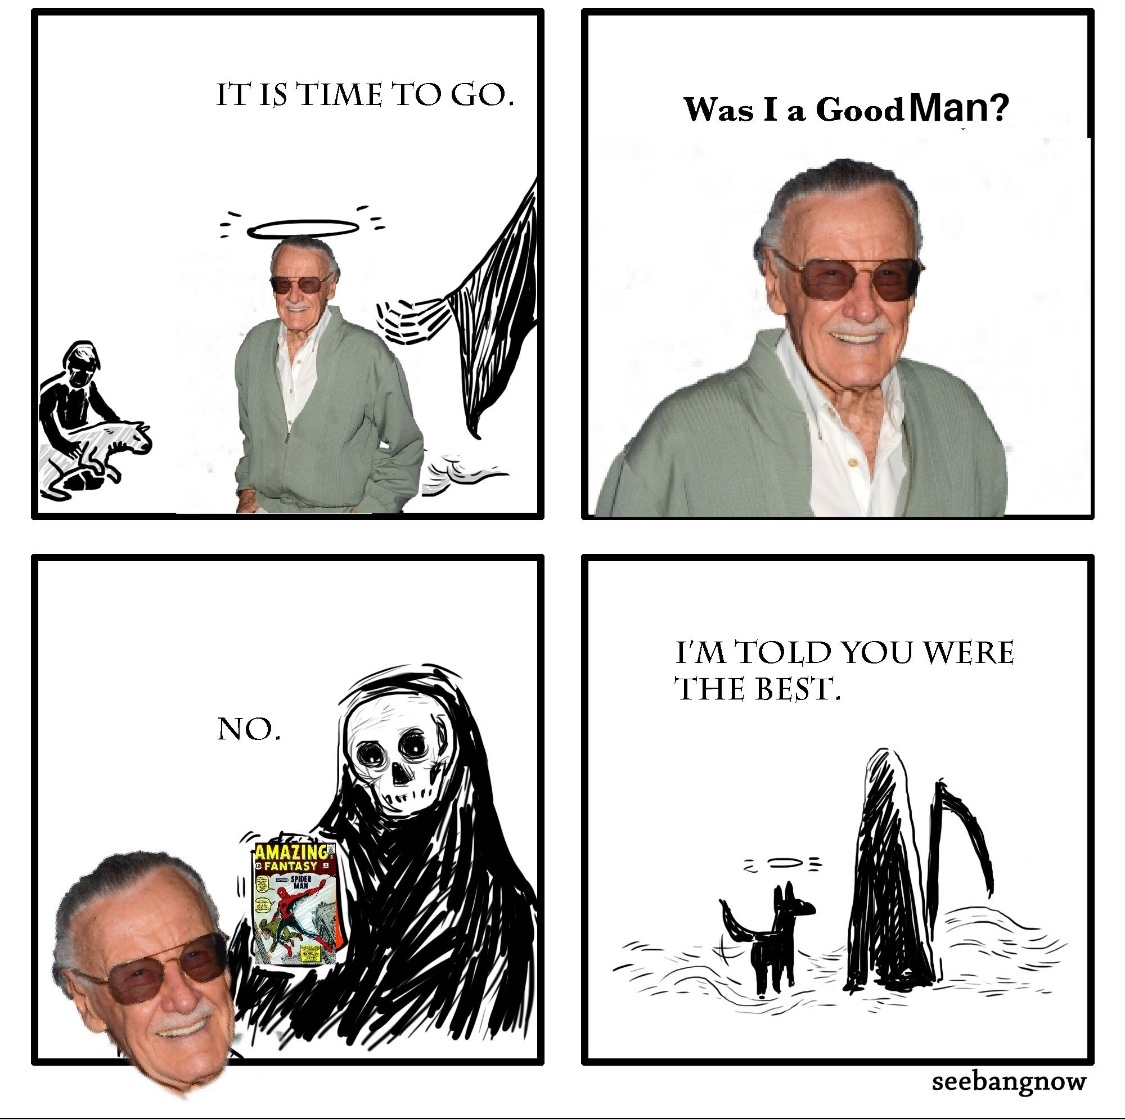 excelsior: onward and upward to greater glory - meme